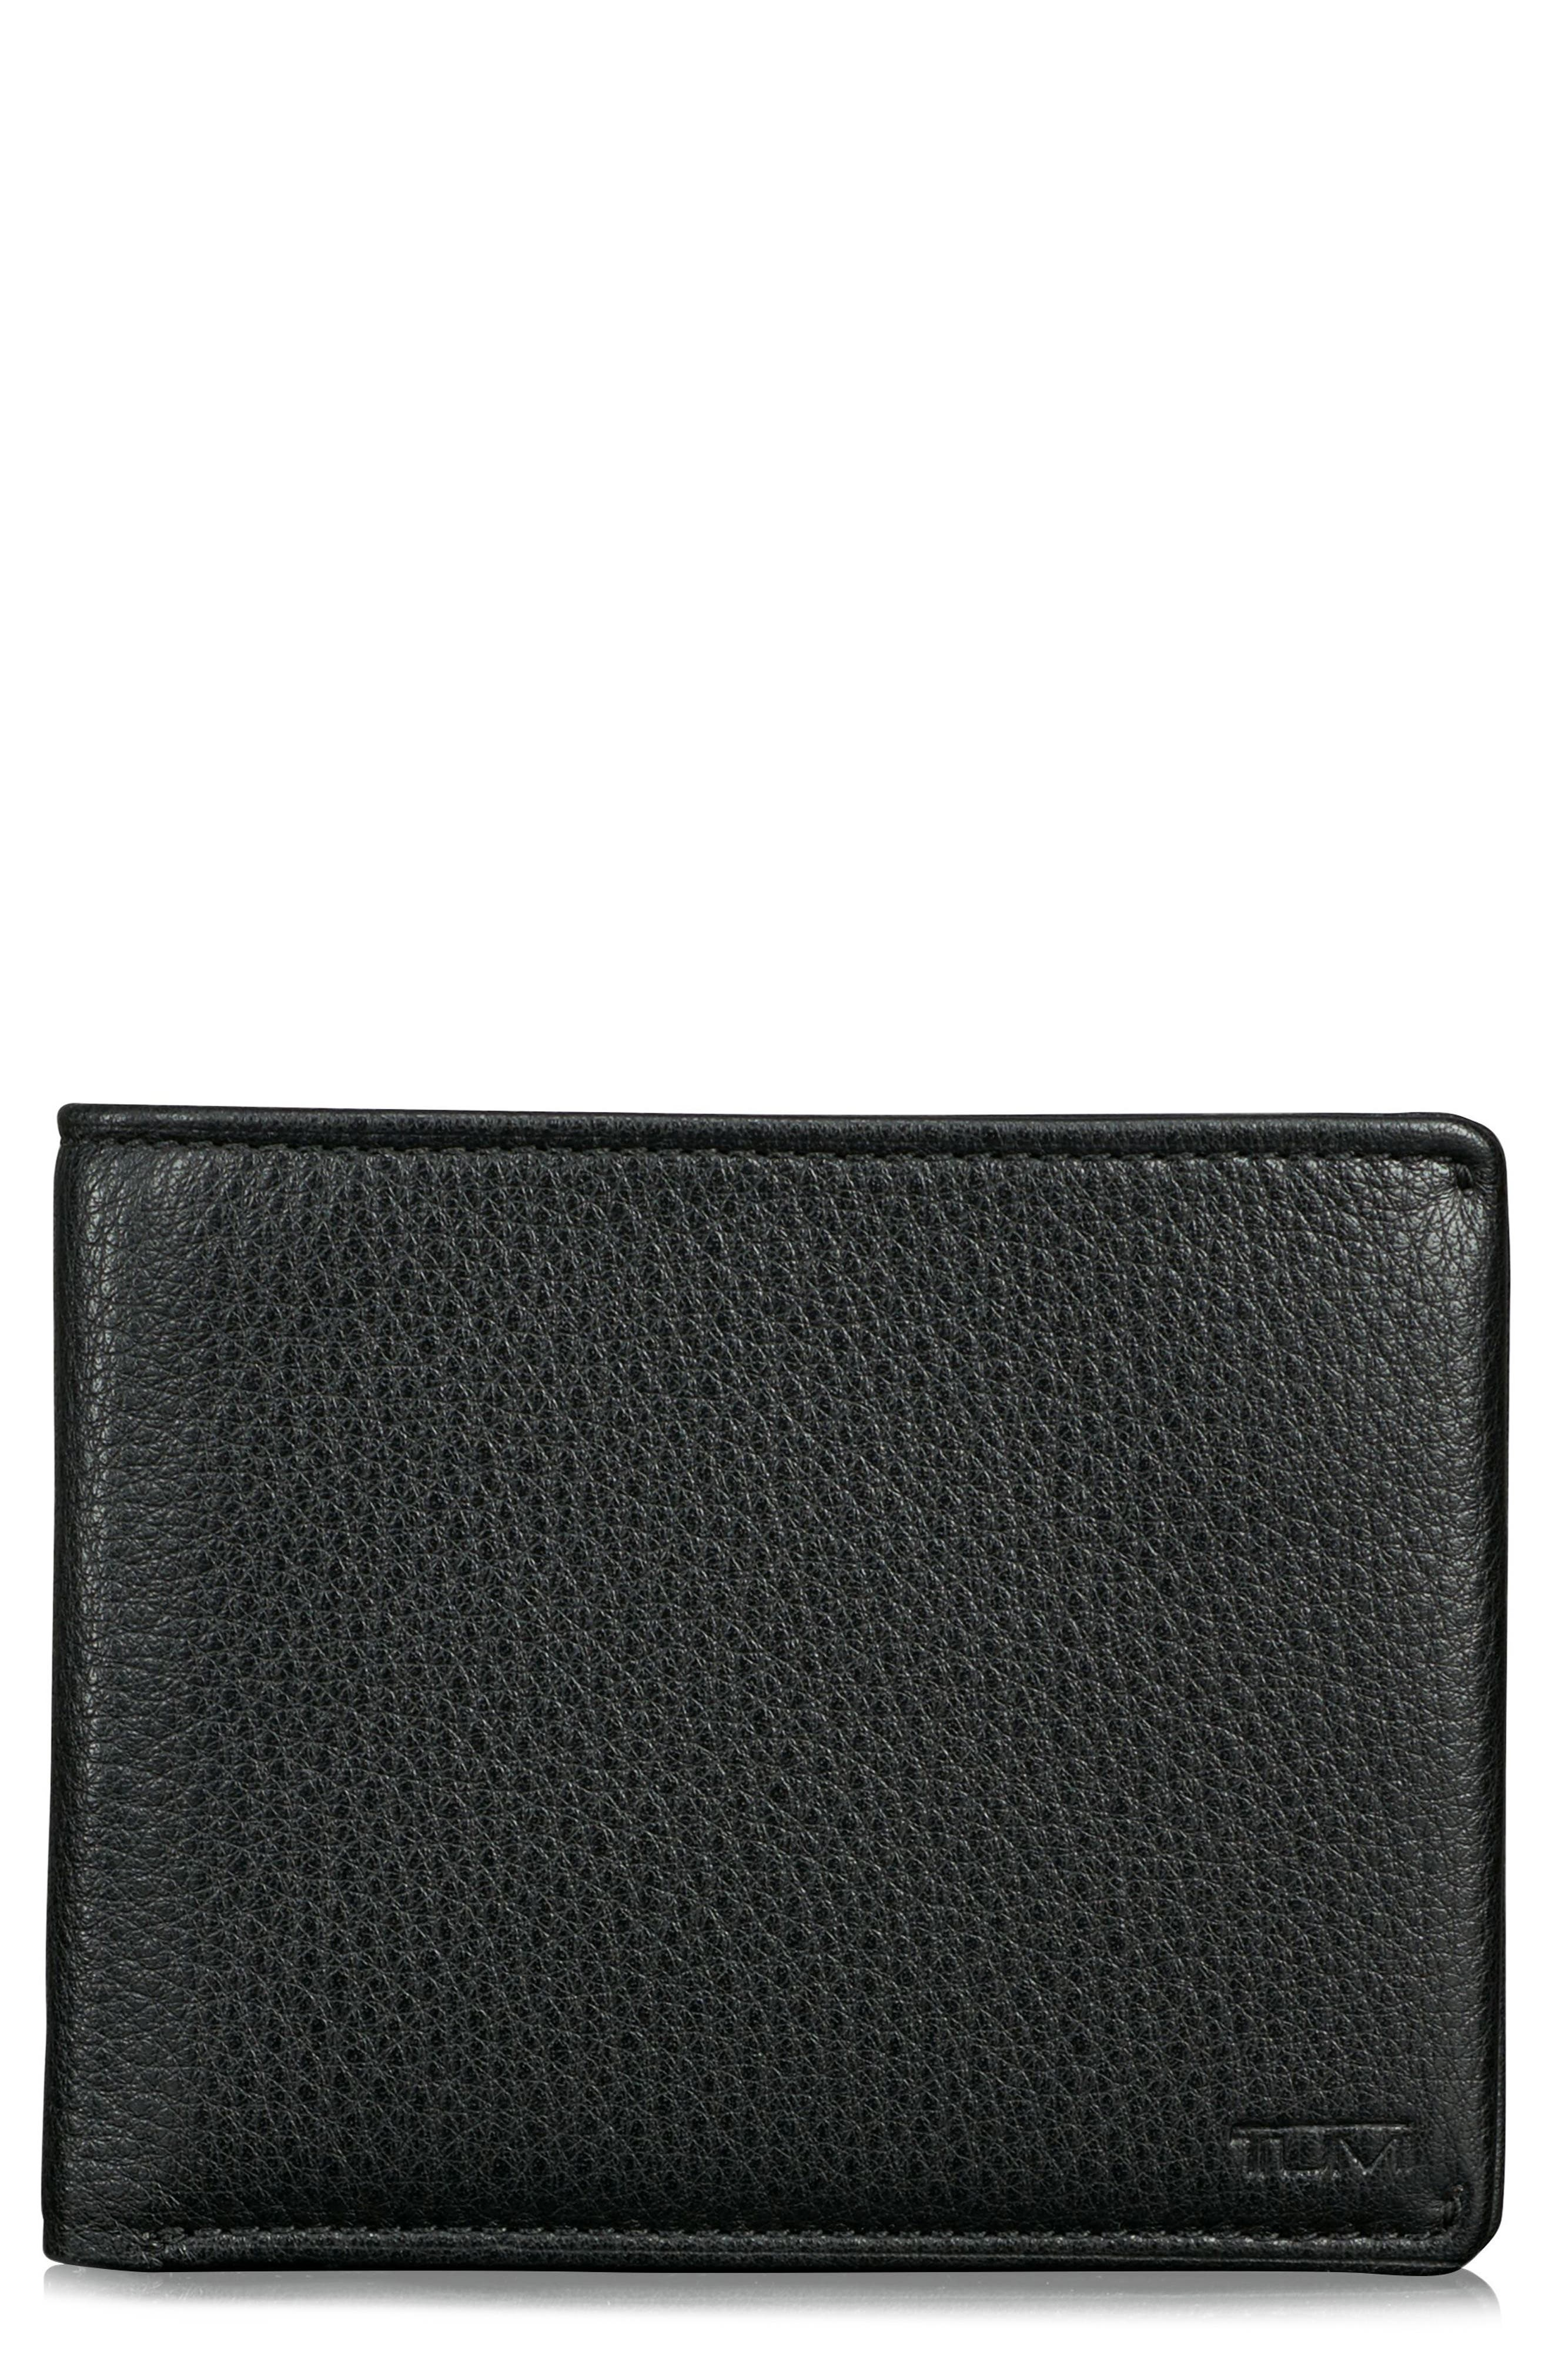 Global Leather RFID Wallet, Main, color, 011